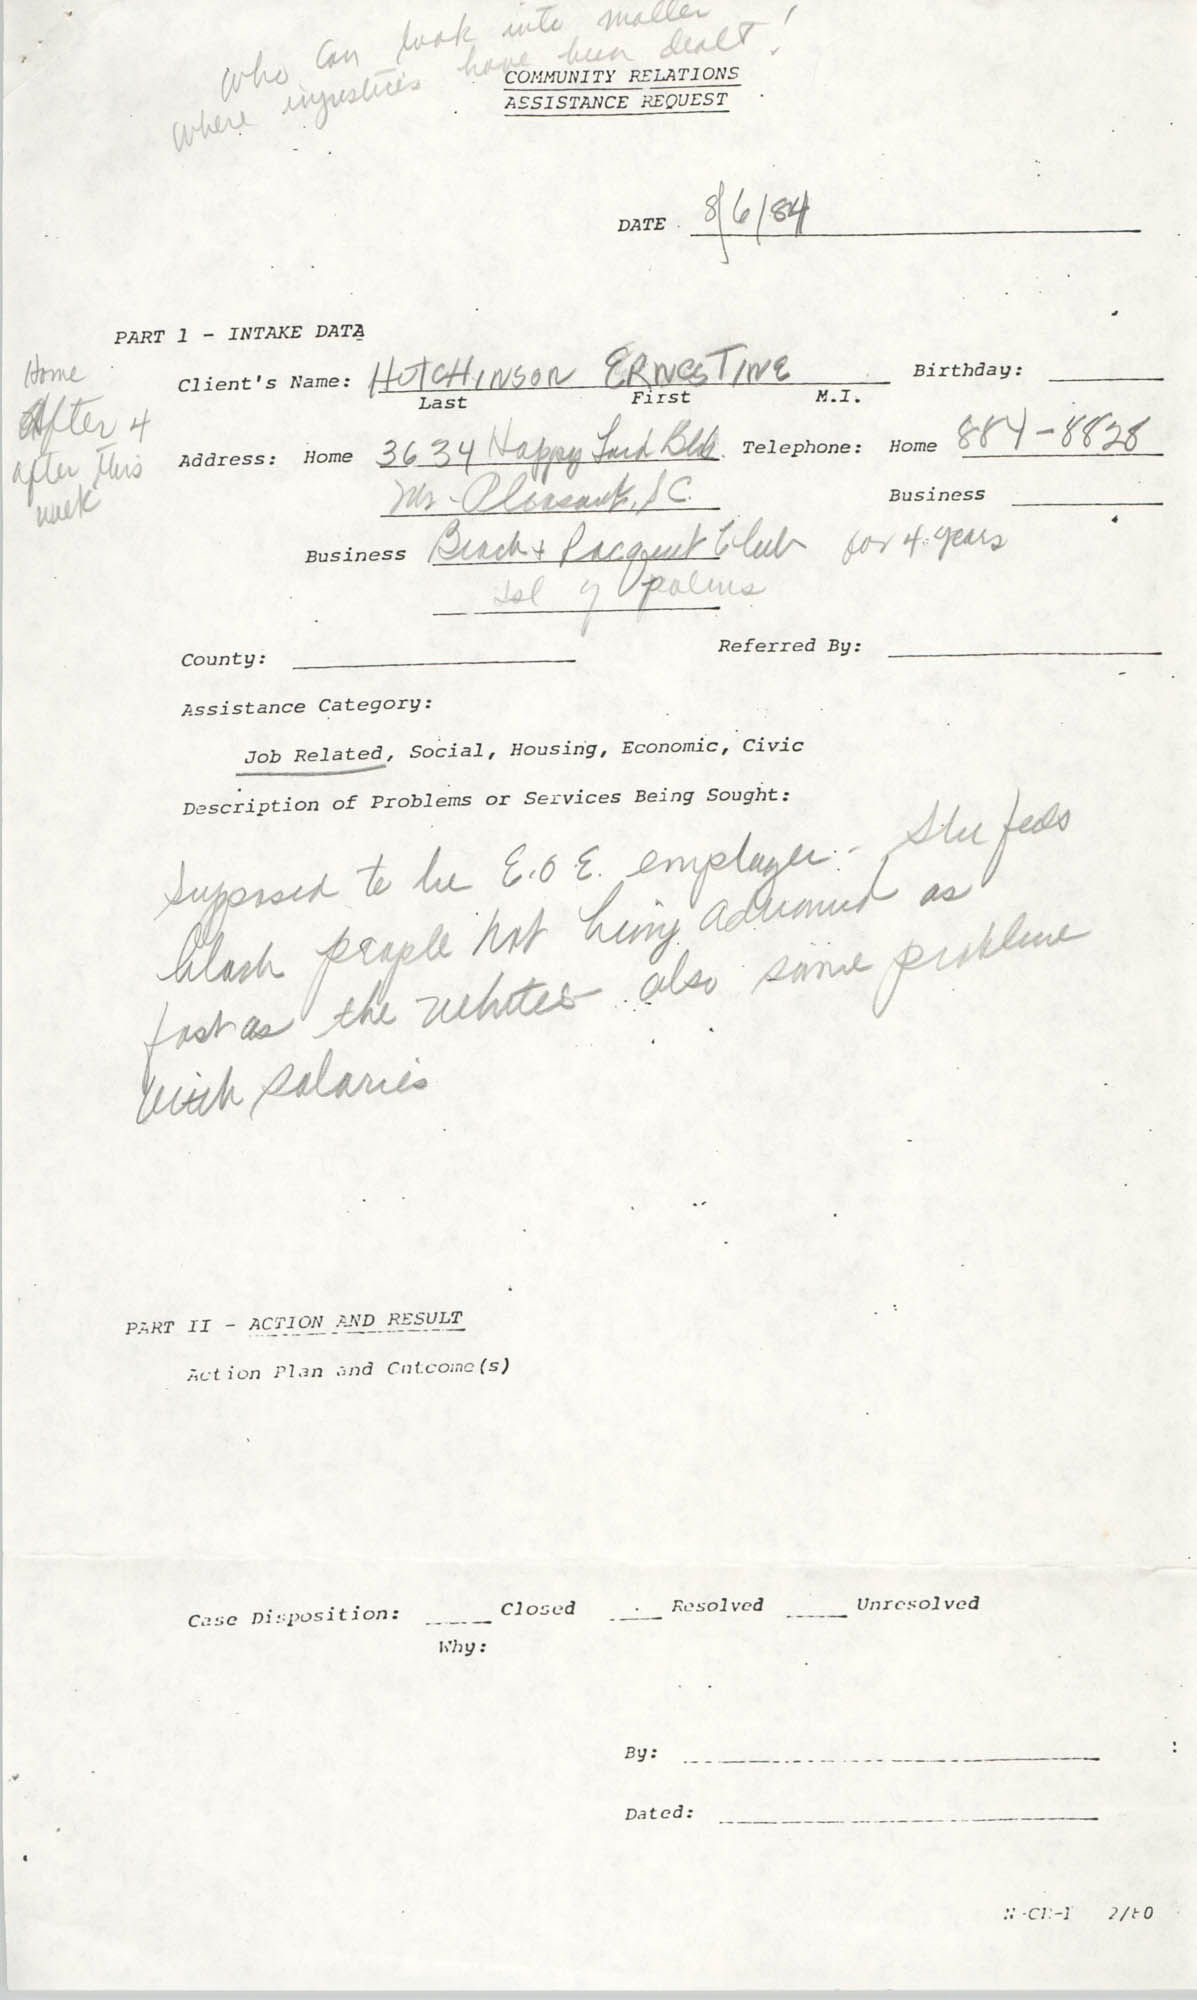 Community Relations Assistance Request, August 6, 1984